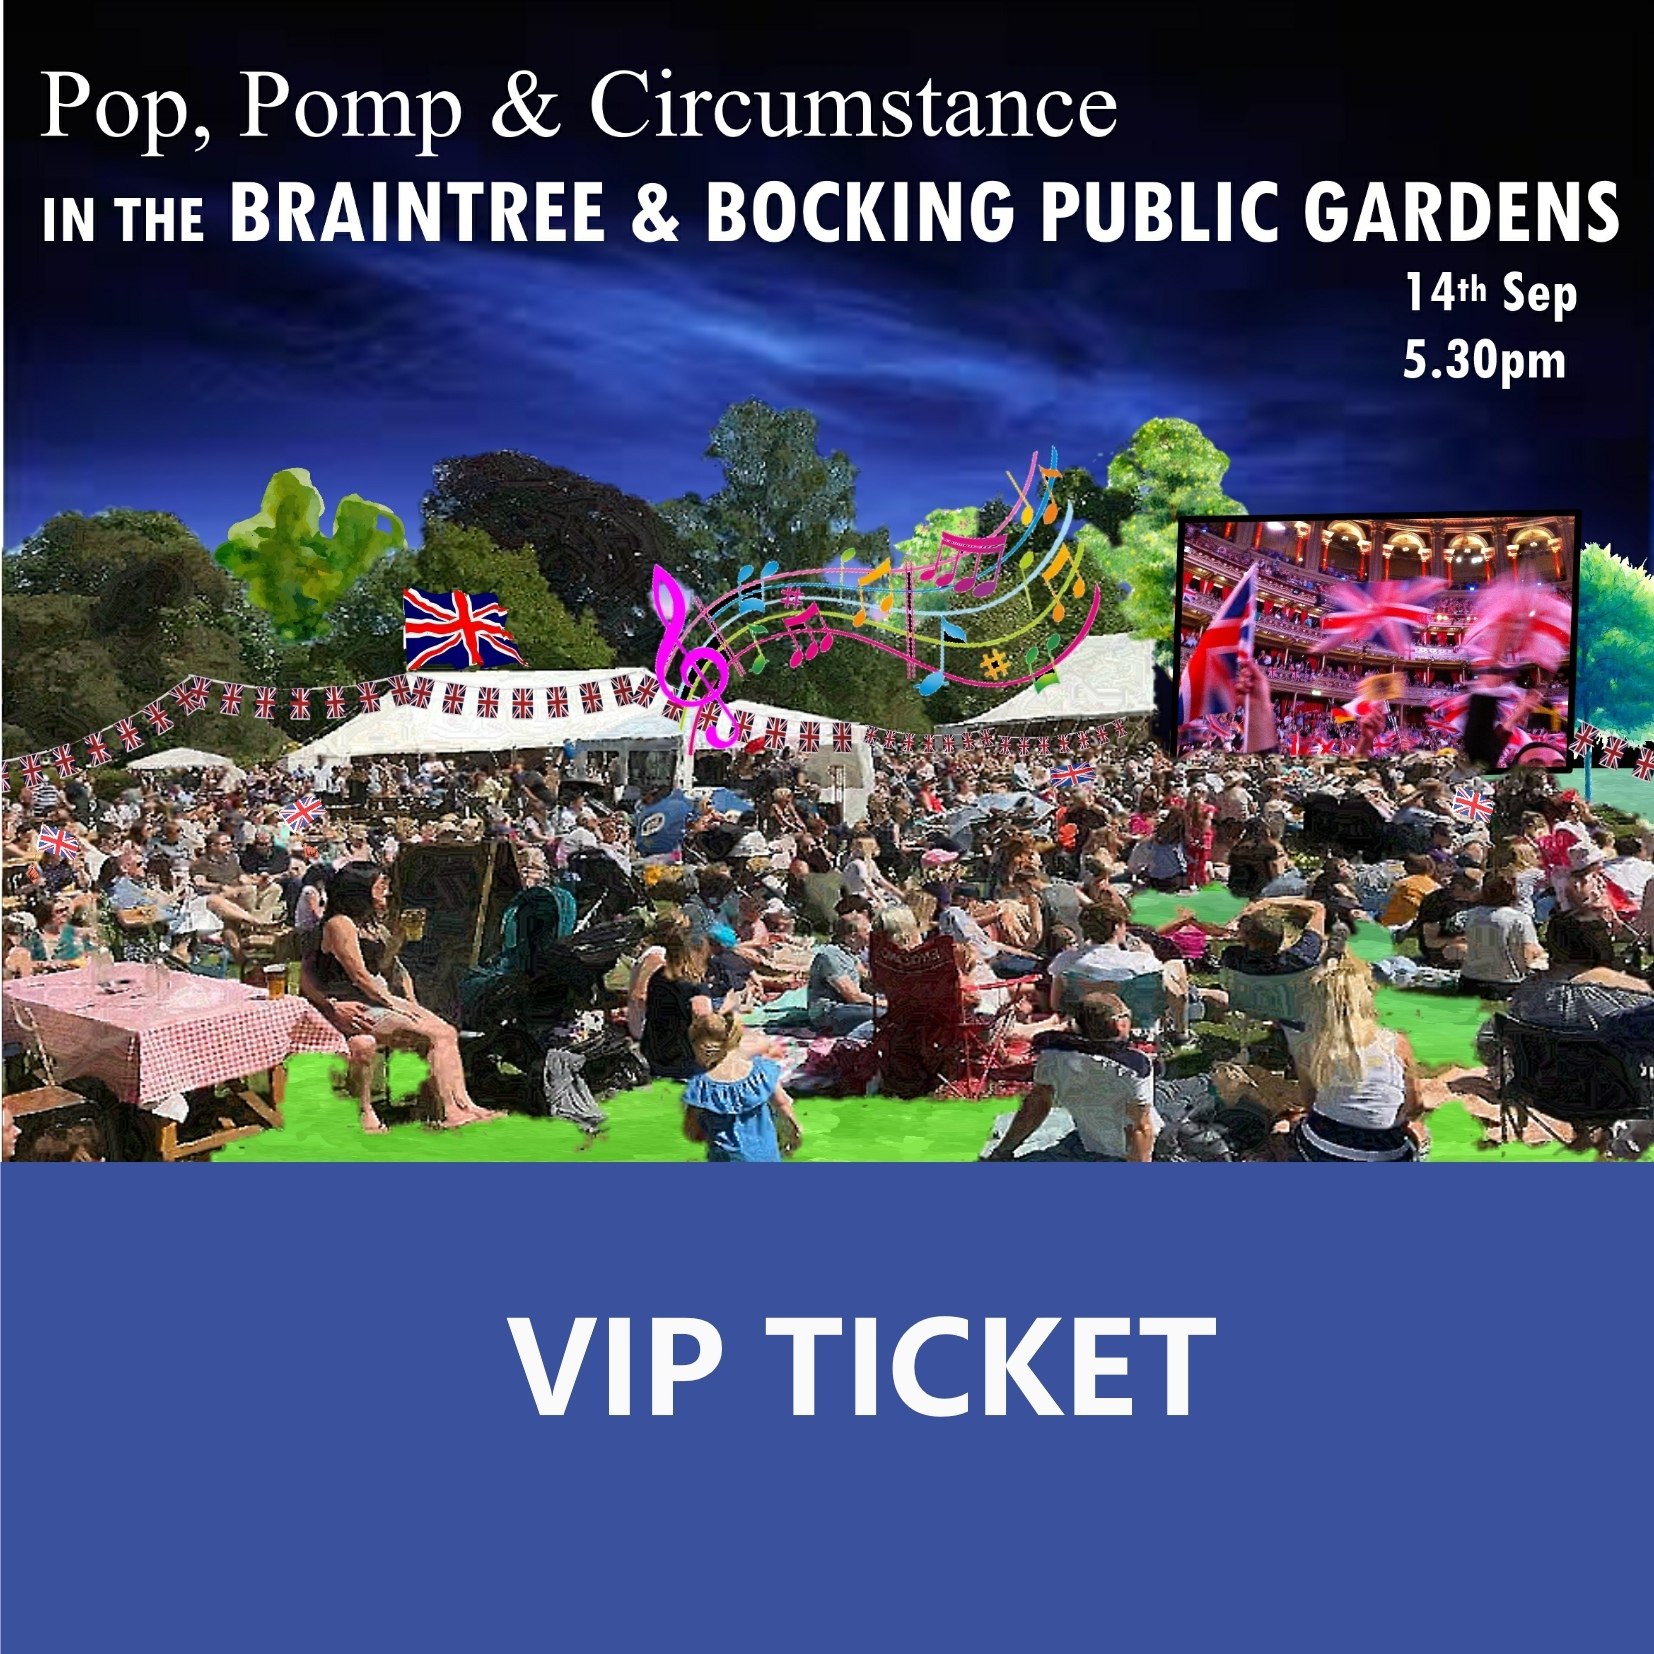 VIP Ticket for Pop, Pomp & Circumstance 00104